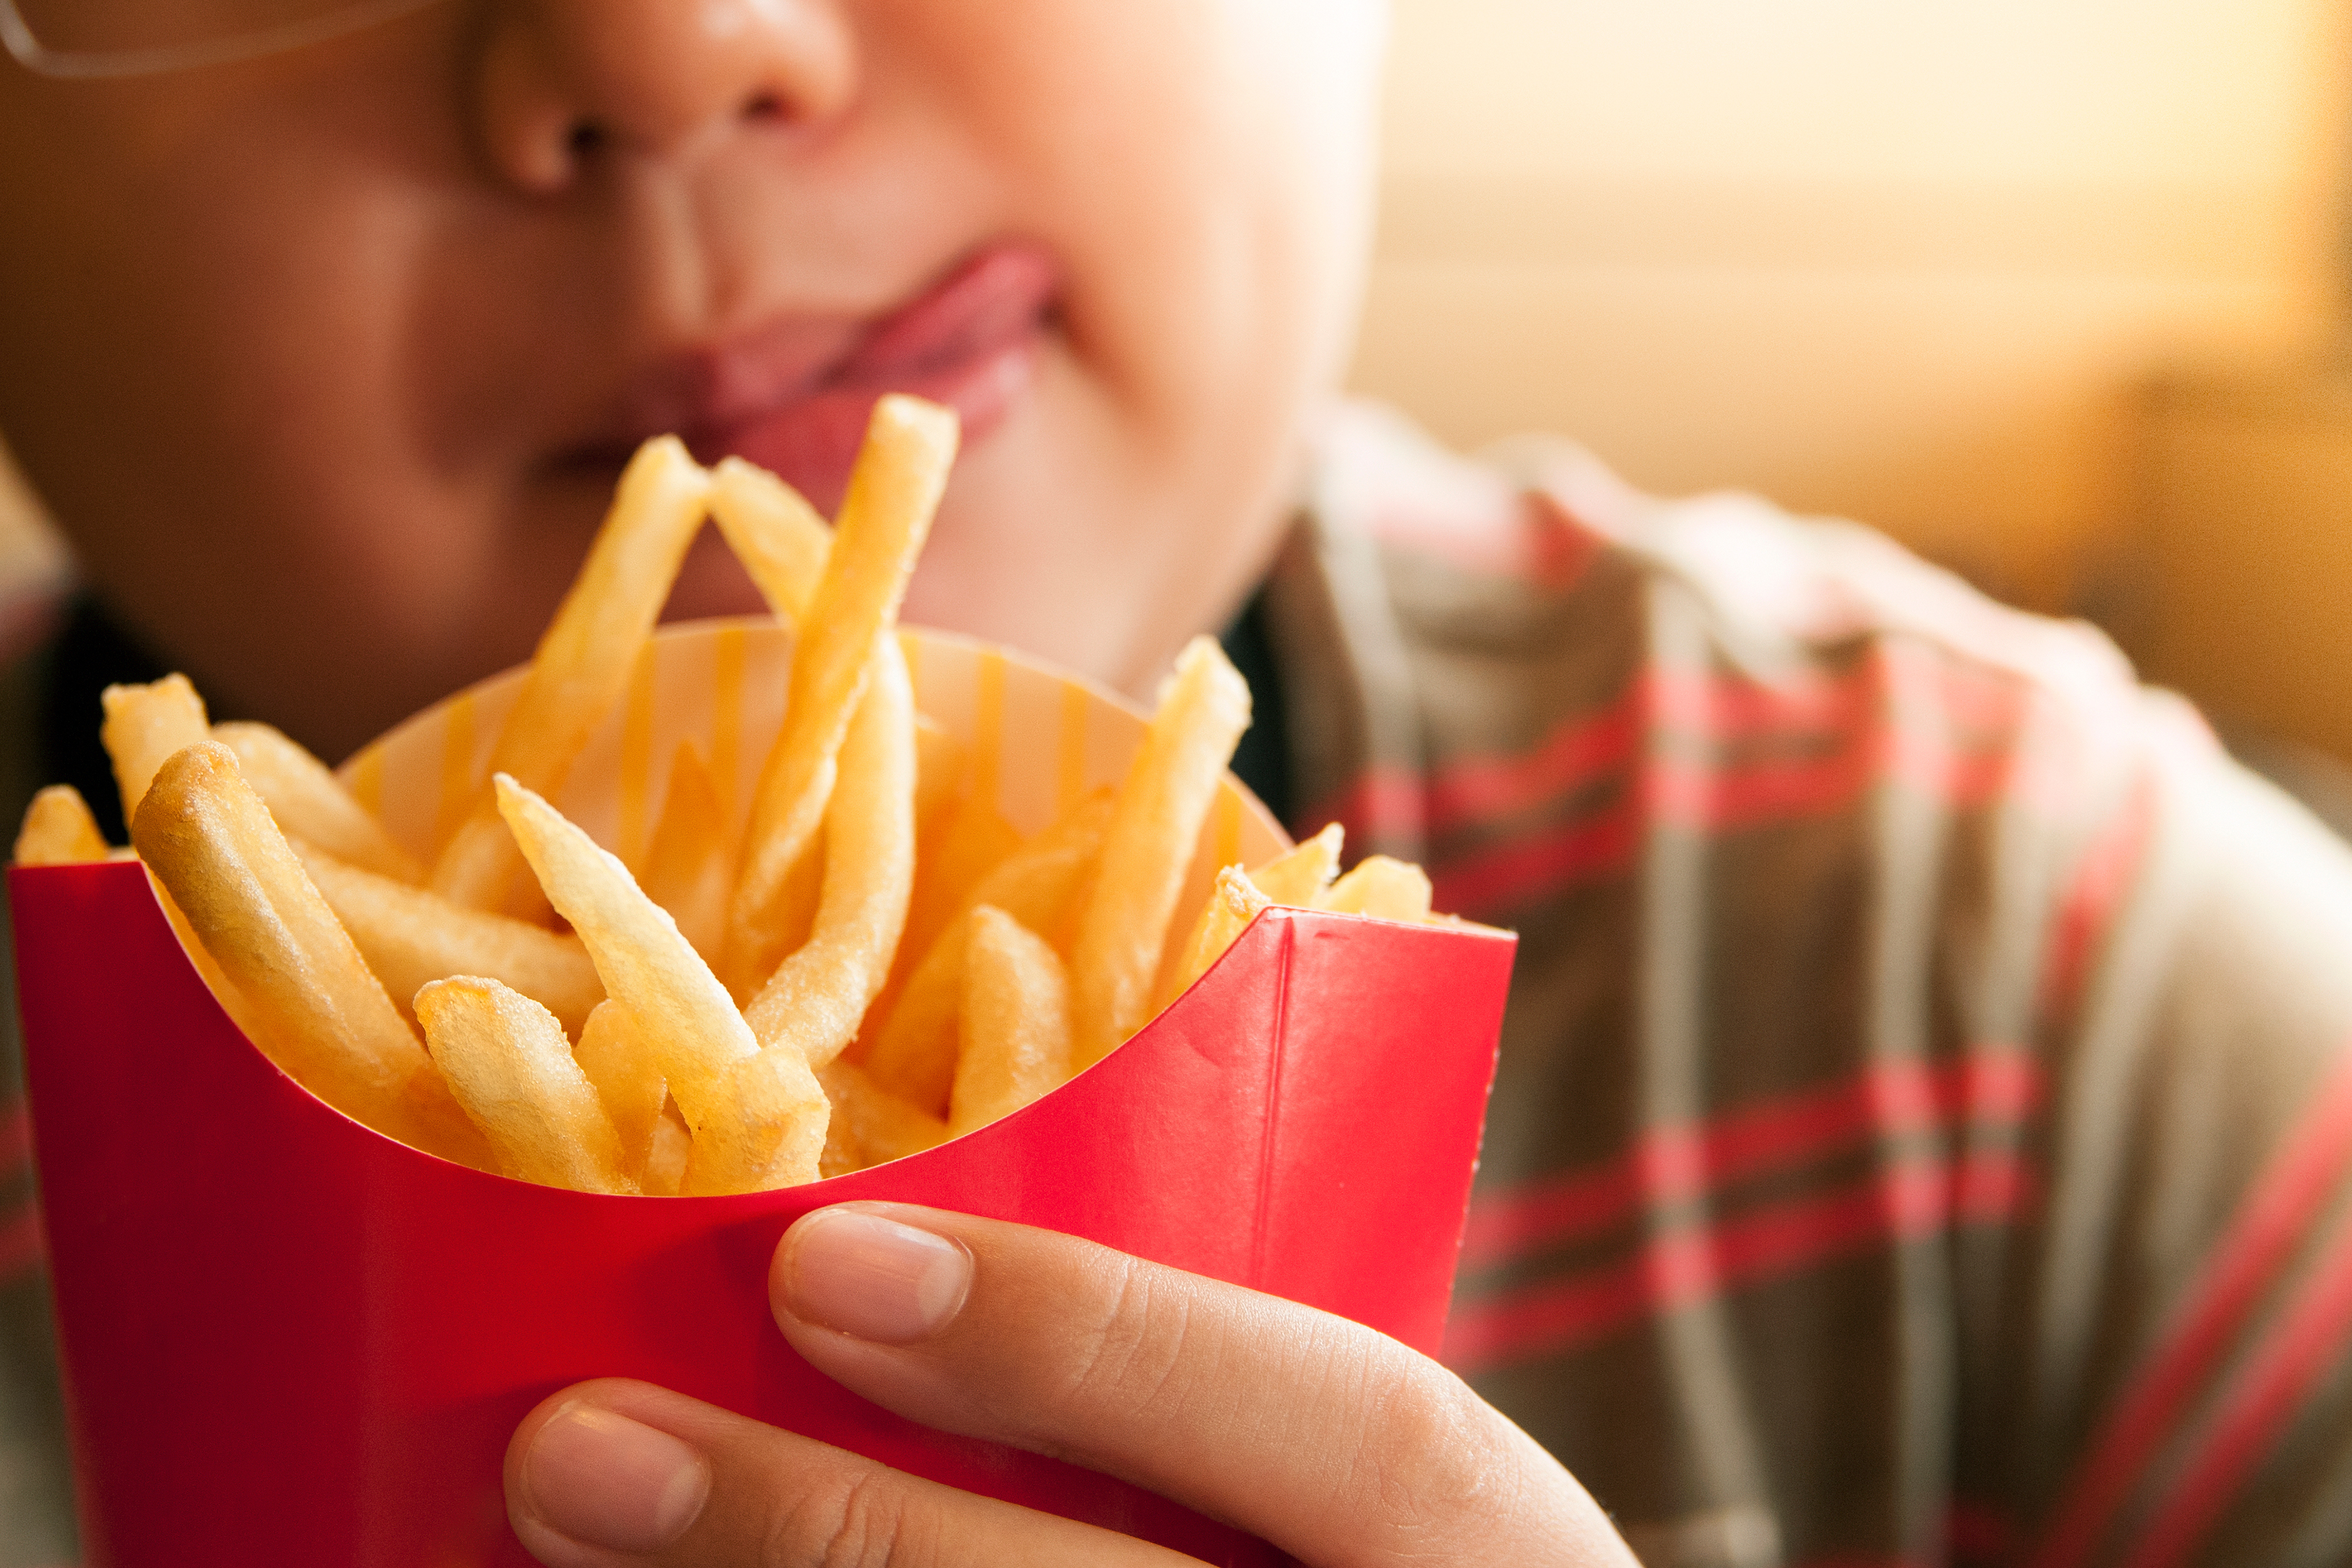 More Kids Are Eating Fast Food And Not The Healthy Options